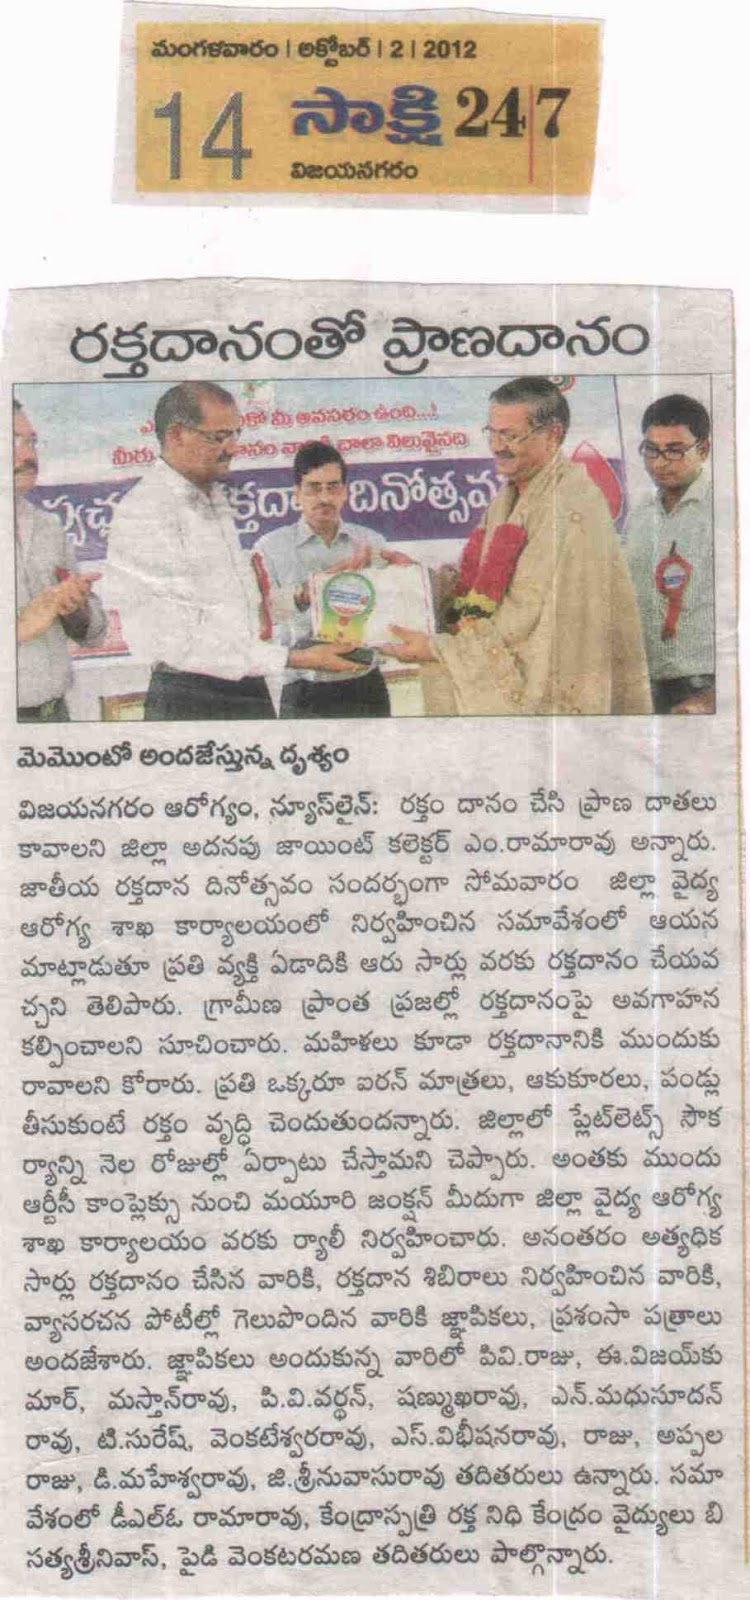 dapcu speak  district aids prevention control unit organized national voluntary blood donors day event at vizianagaram on 1st 2012